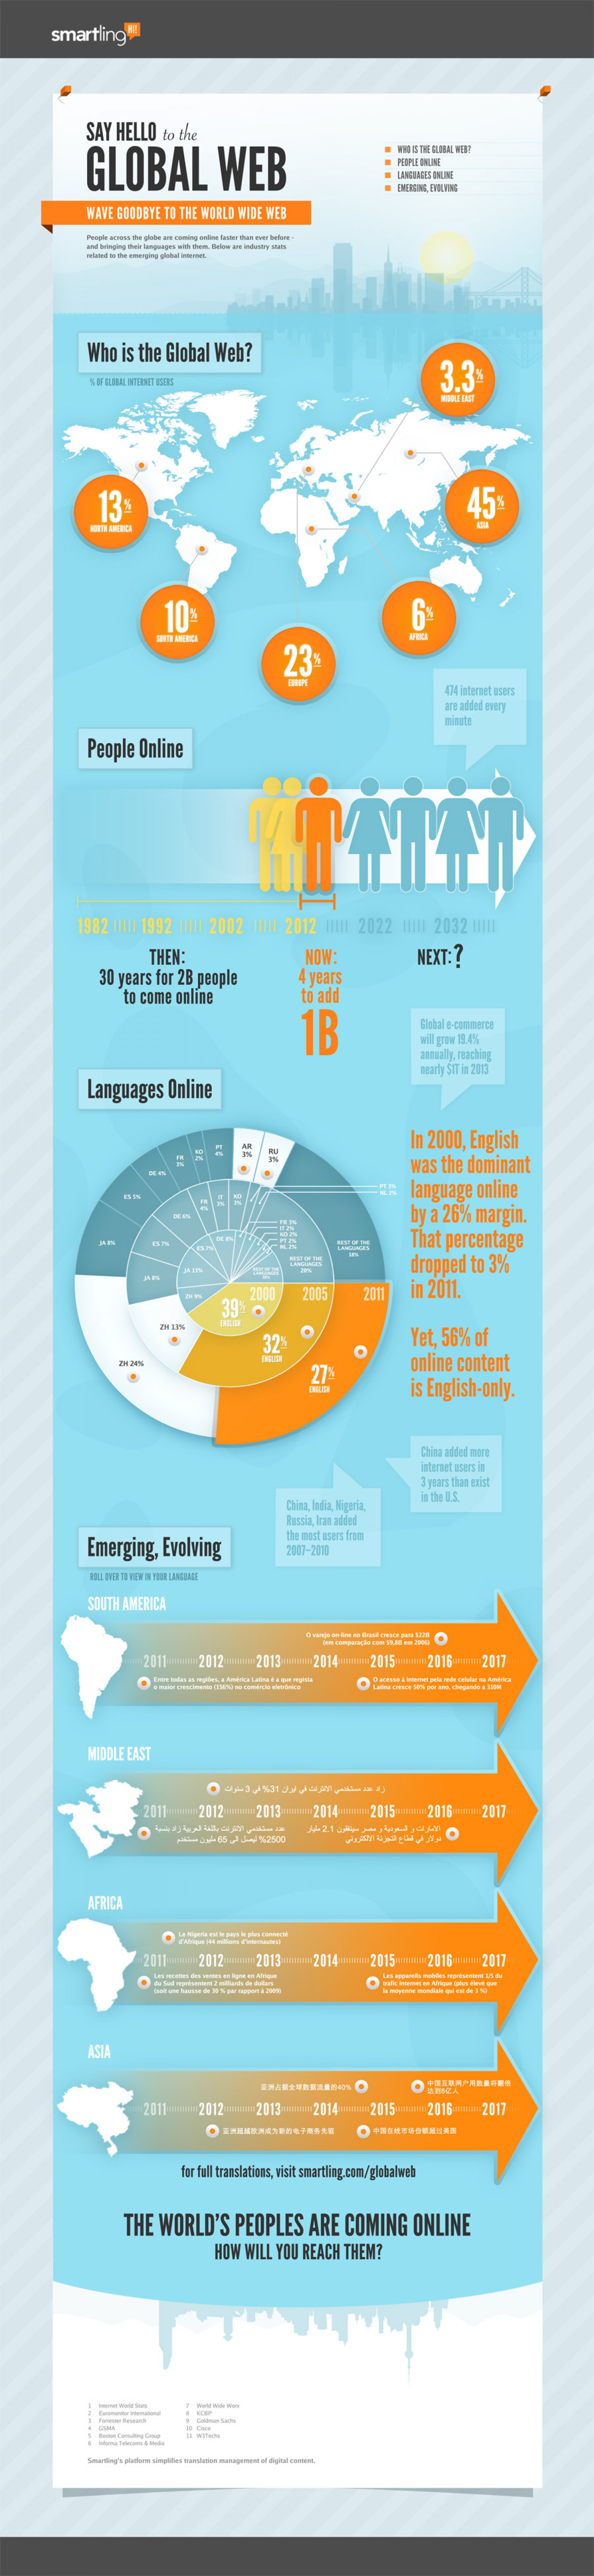 Say Hello to The Global Web Infographic